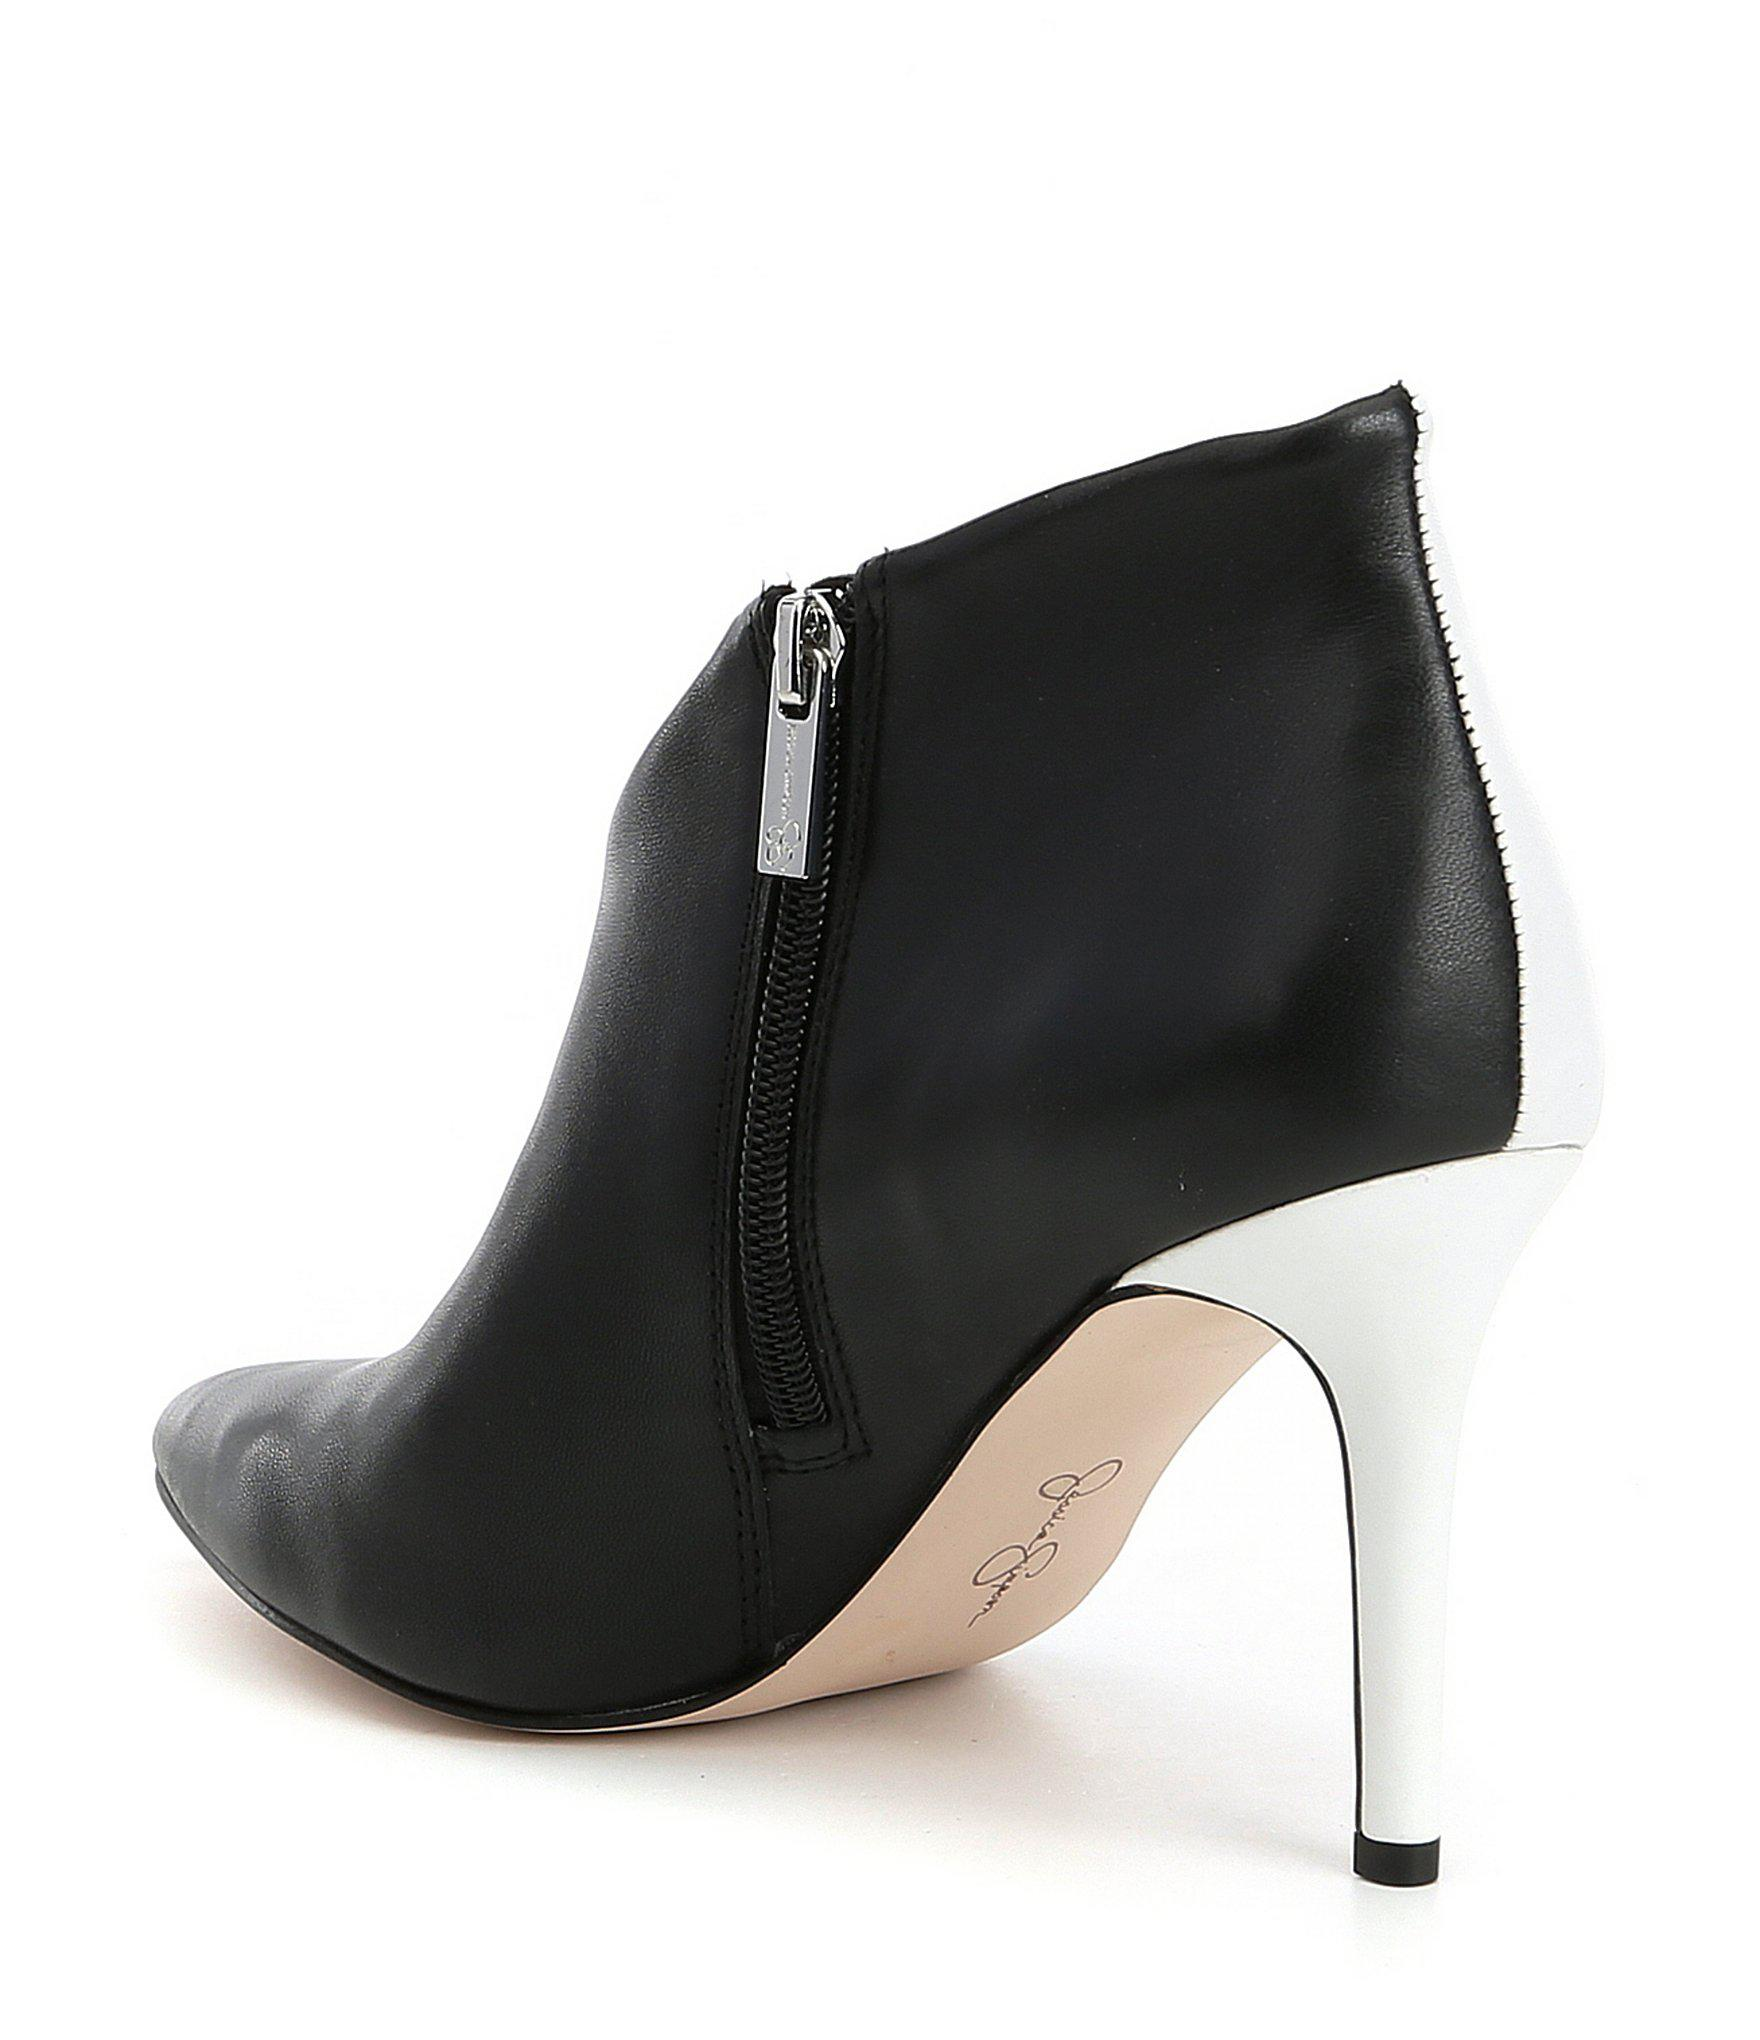 2669656dc8f Jessica Simpson - Black Layra Leather Envelope Shooties - Lyst. View  fullscreen